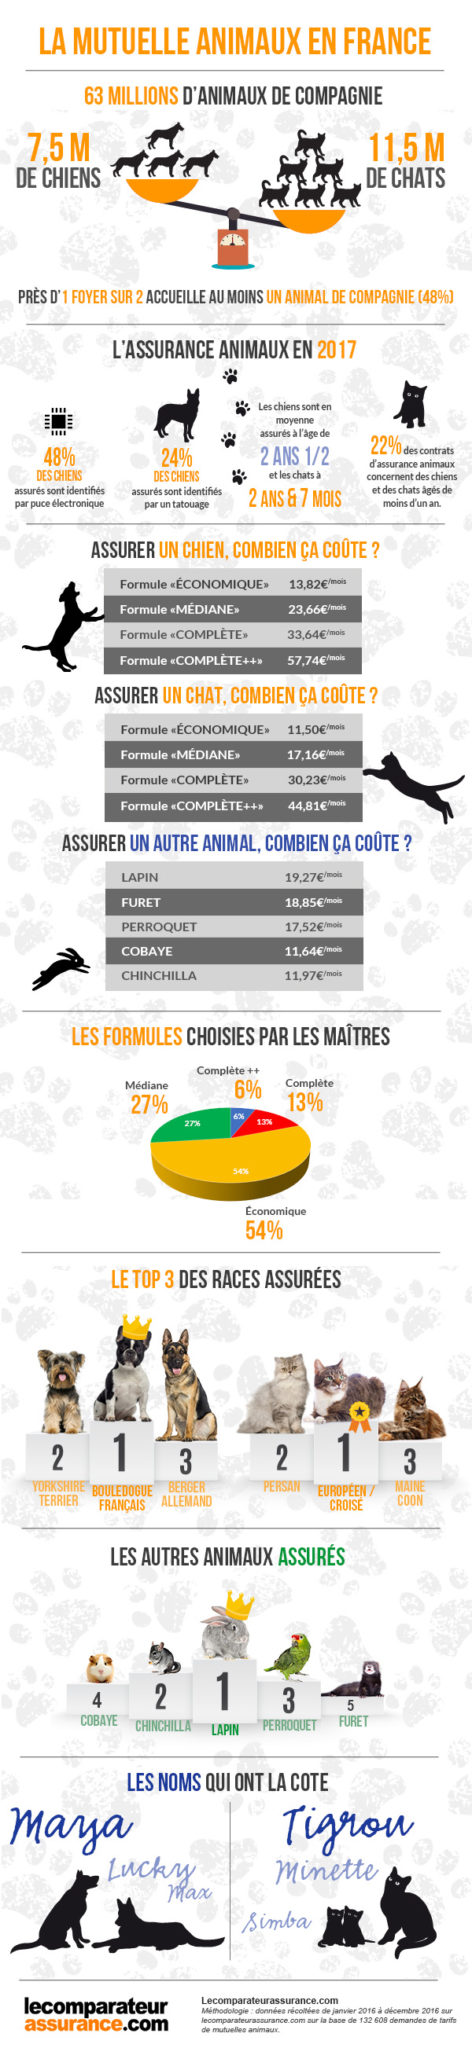 infographie mutuelle animaux-2017